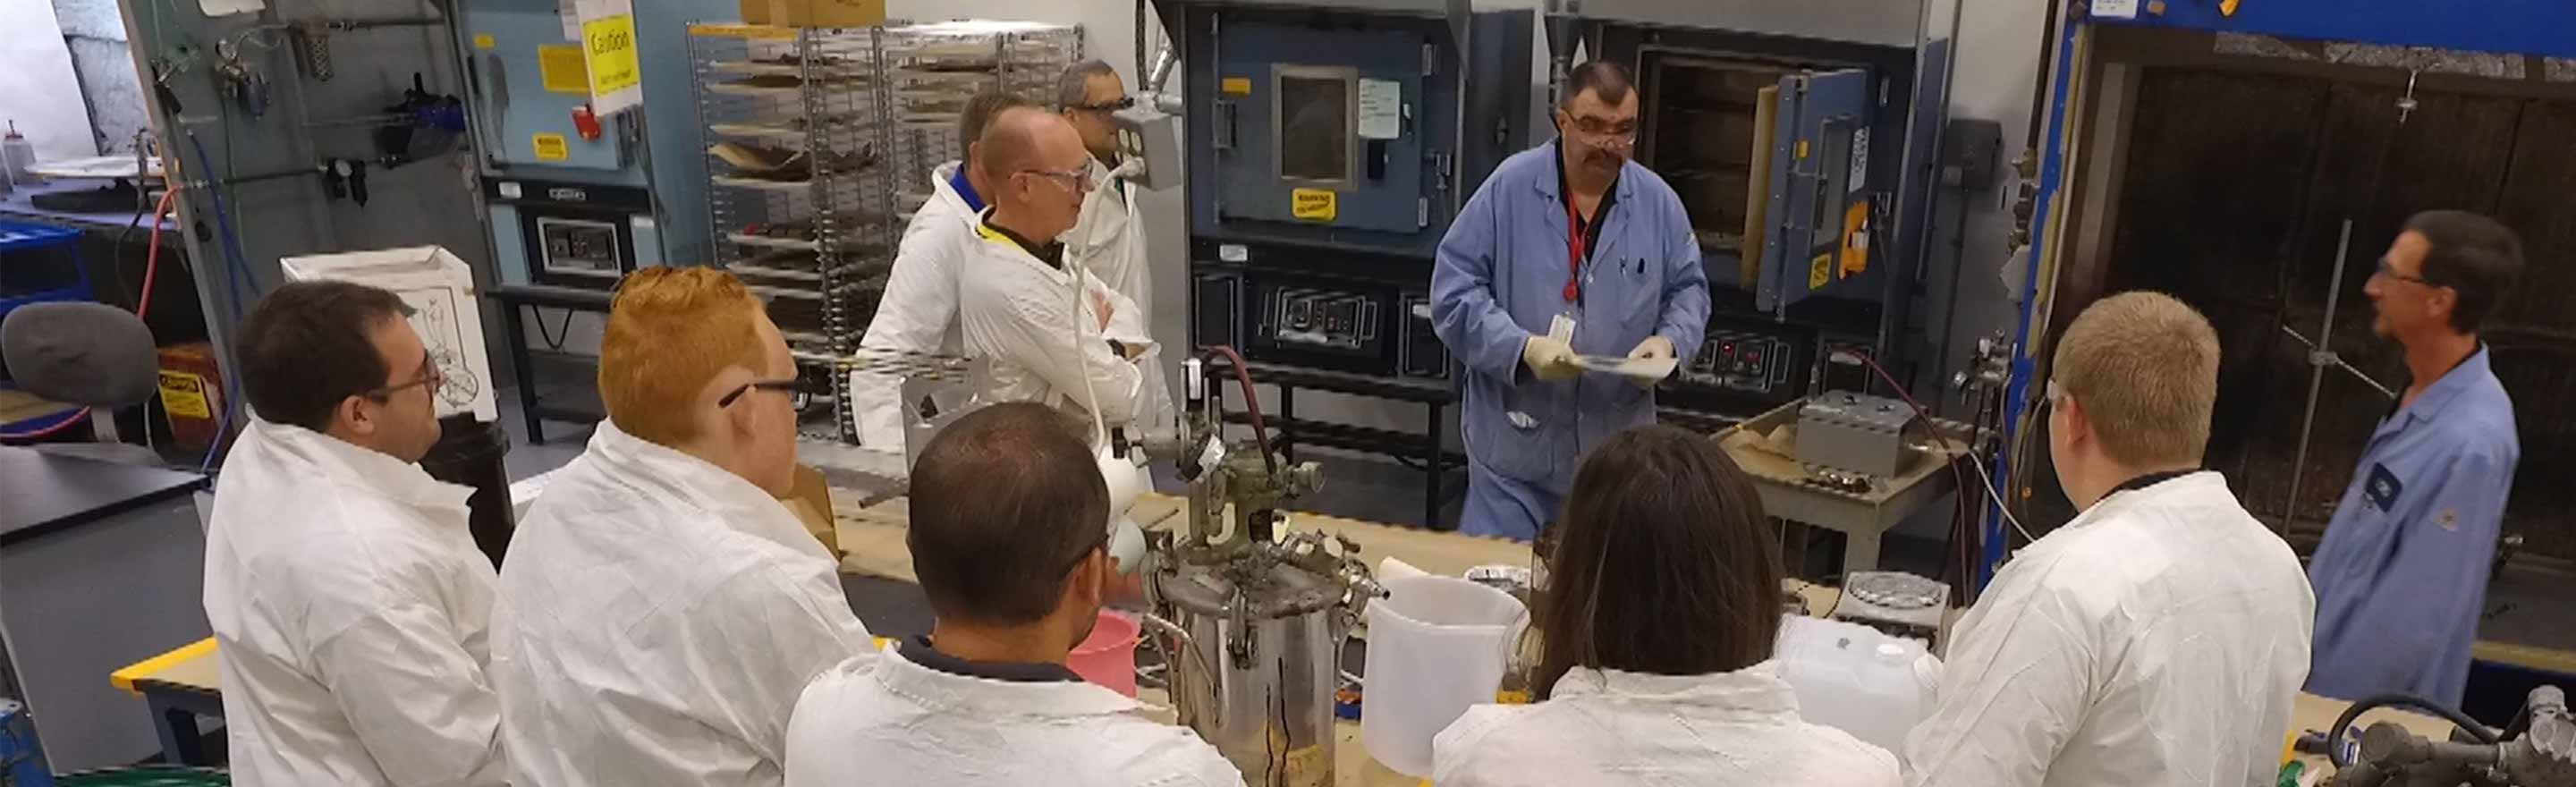 LORD academy training with attendees in lab coats watching demonstrations in the lab.